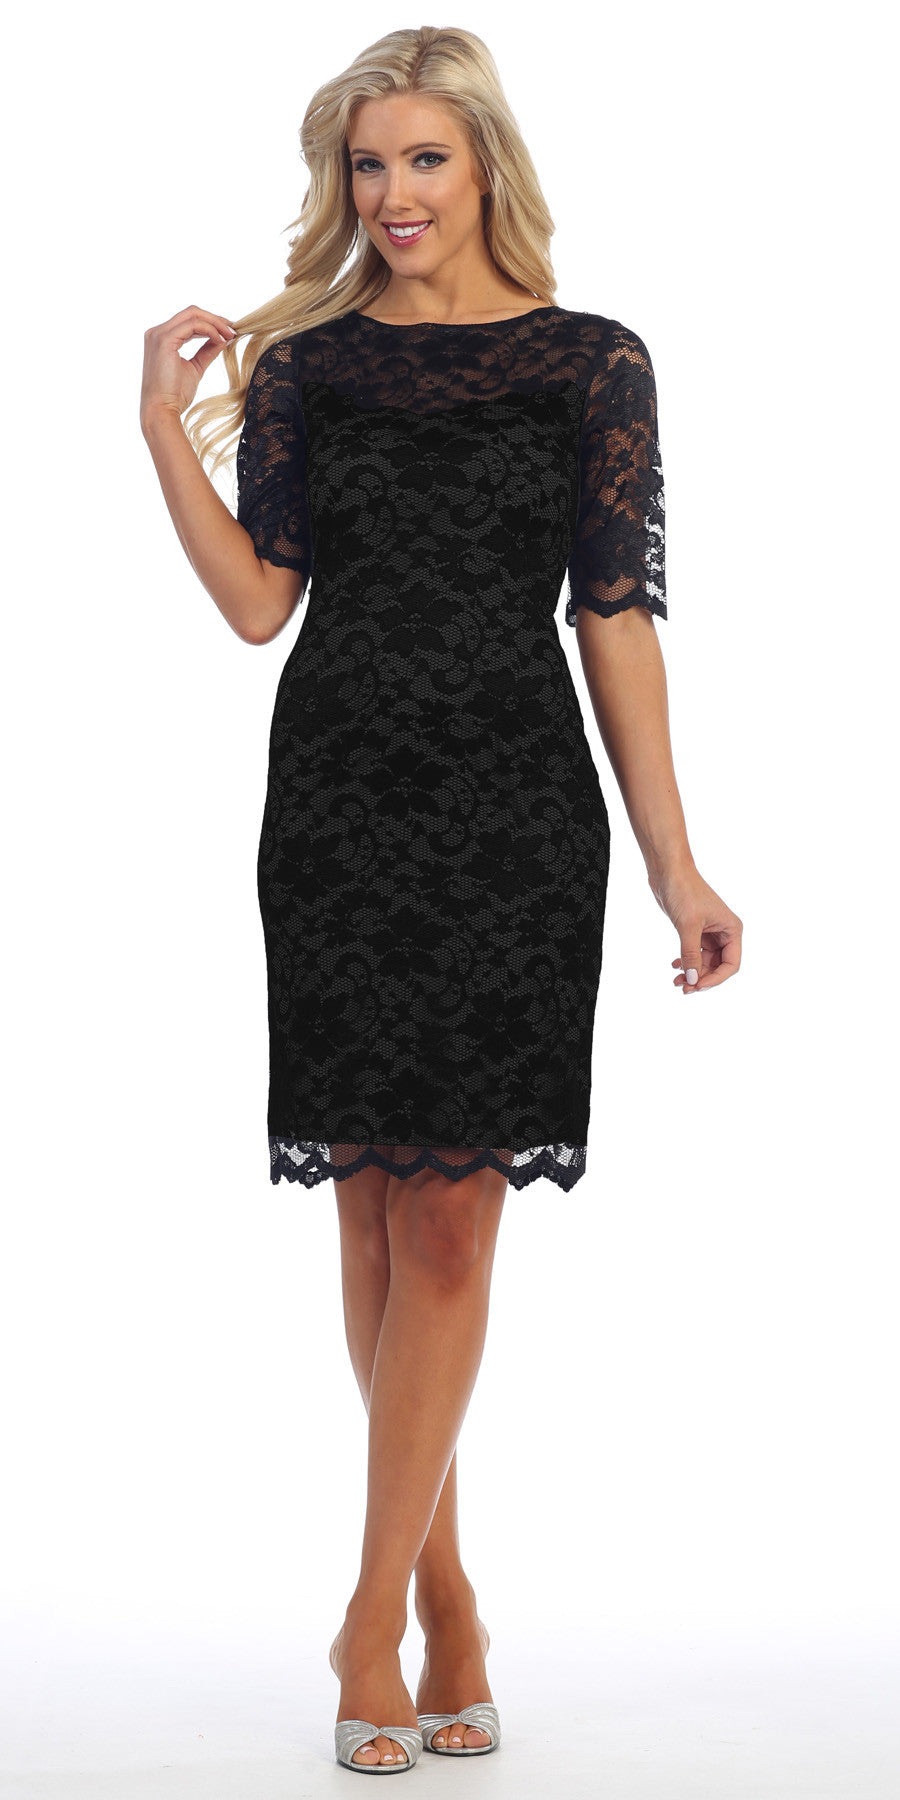 Lace Cocktail Dress Knee Length Black 3/4 Length Sleeves